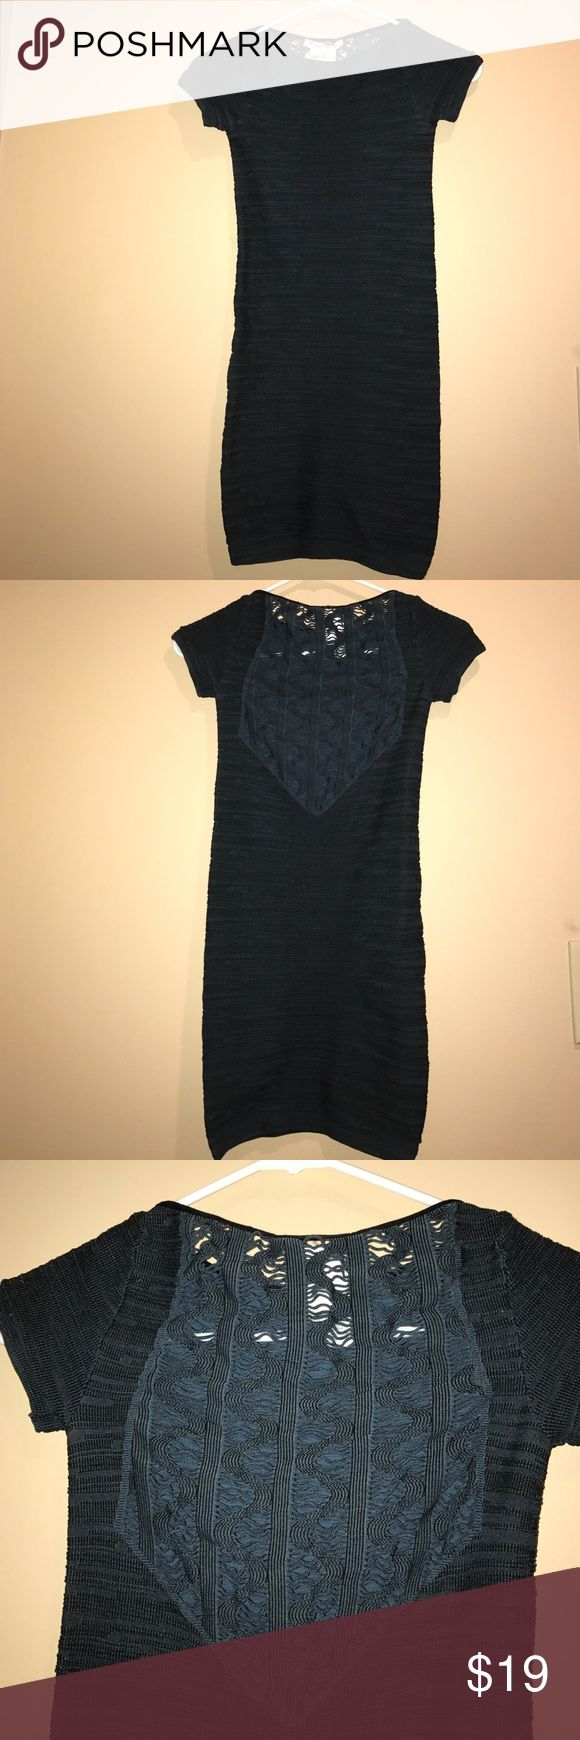 BCBGeneration Navy Stretch Dress This BCCGeneration navy mini dress is sexy and fitted. Stretchy material is very comfortable. Probably worn twice. Perfect condition. BCBGeneration Dresses Mini